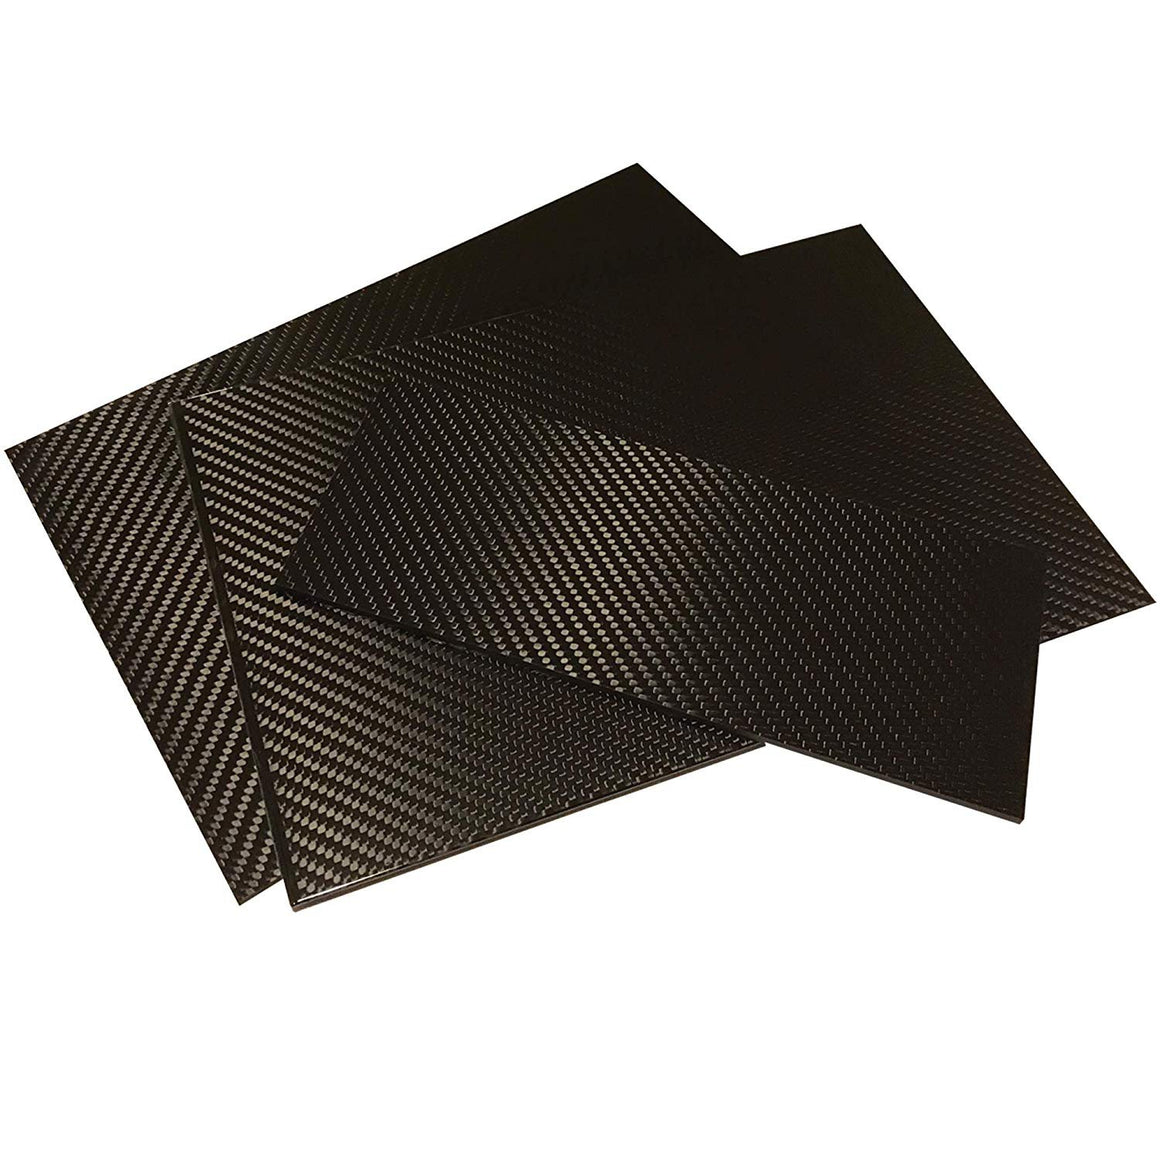 (1) Carbon Fiber Plate - 200mm x 300mm x 1mm Thick - 100% -3K Tow, Plain Weave -High Gloss Surface (1) Plate